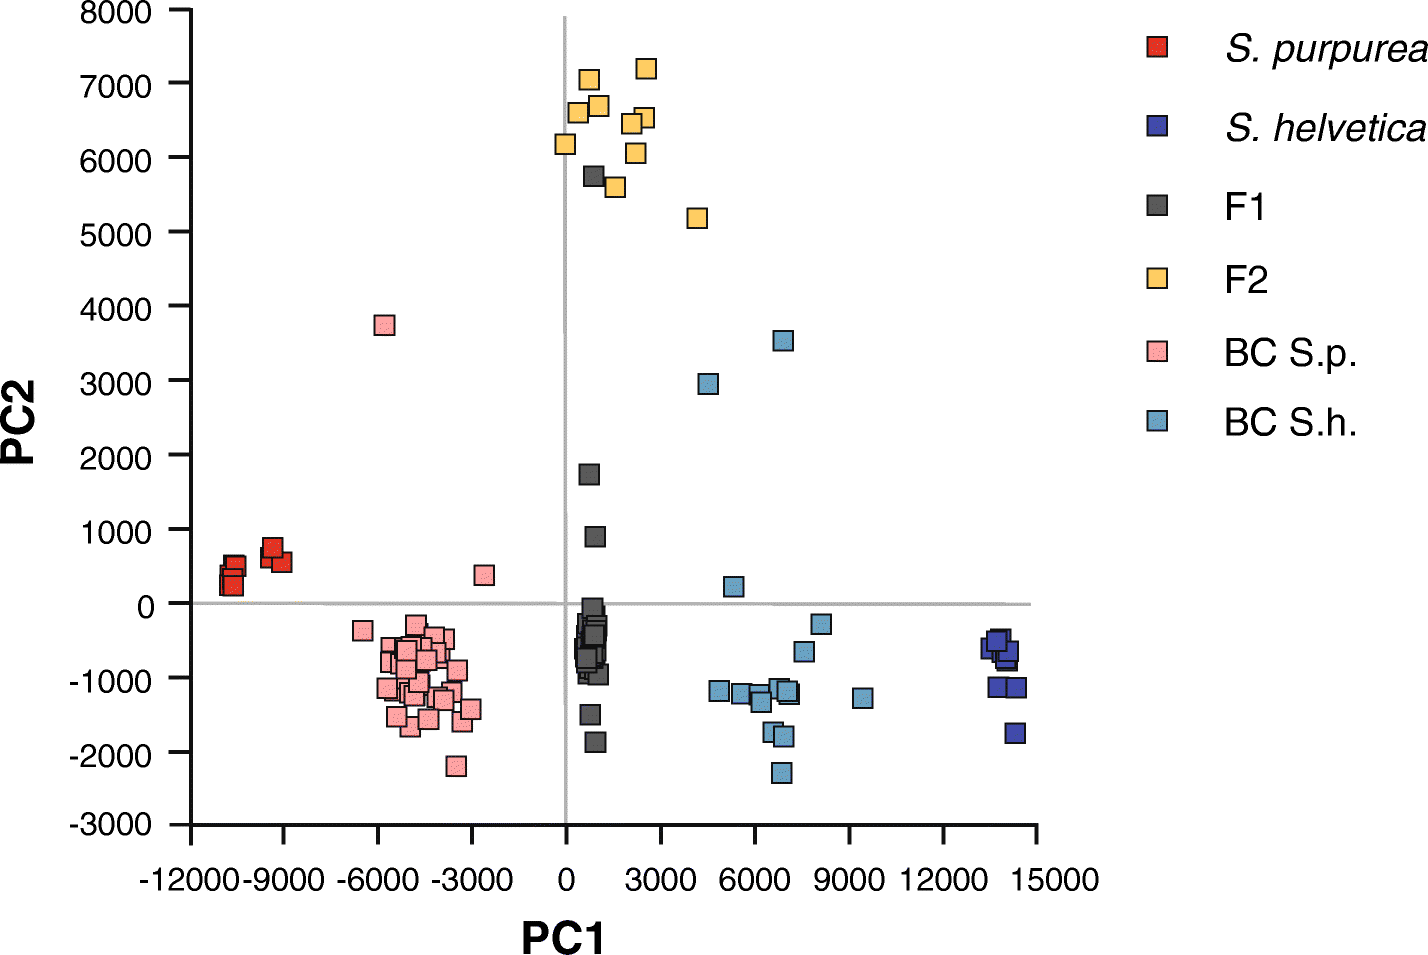 Rad Seq Reveals Genetic Structure Of The F2 Generation Natural E Voucher 7 Eleven 711 Rp 10000 Fig 2